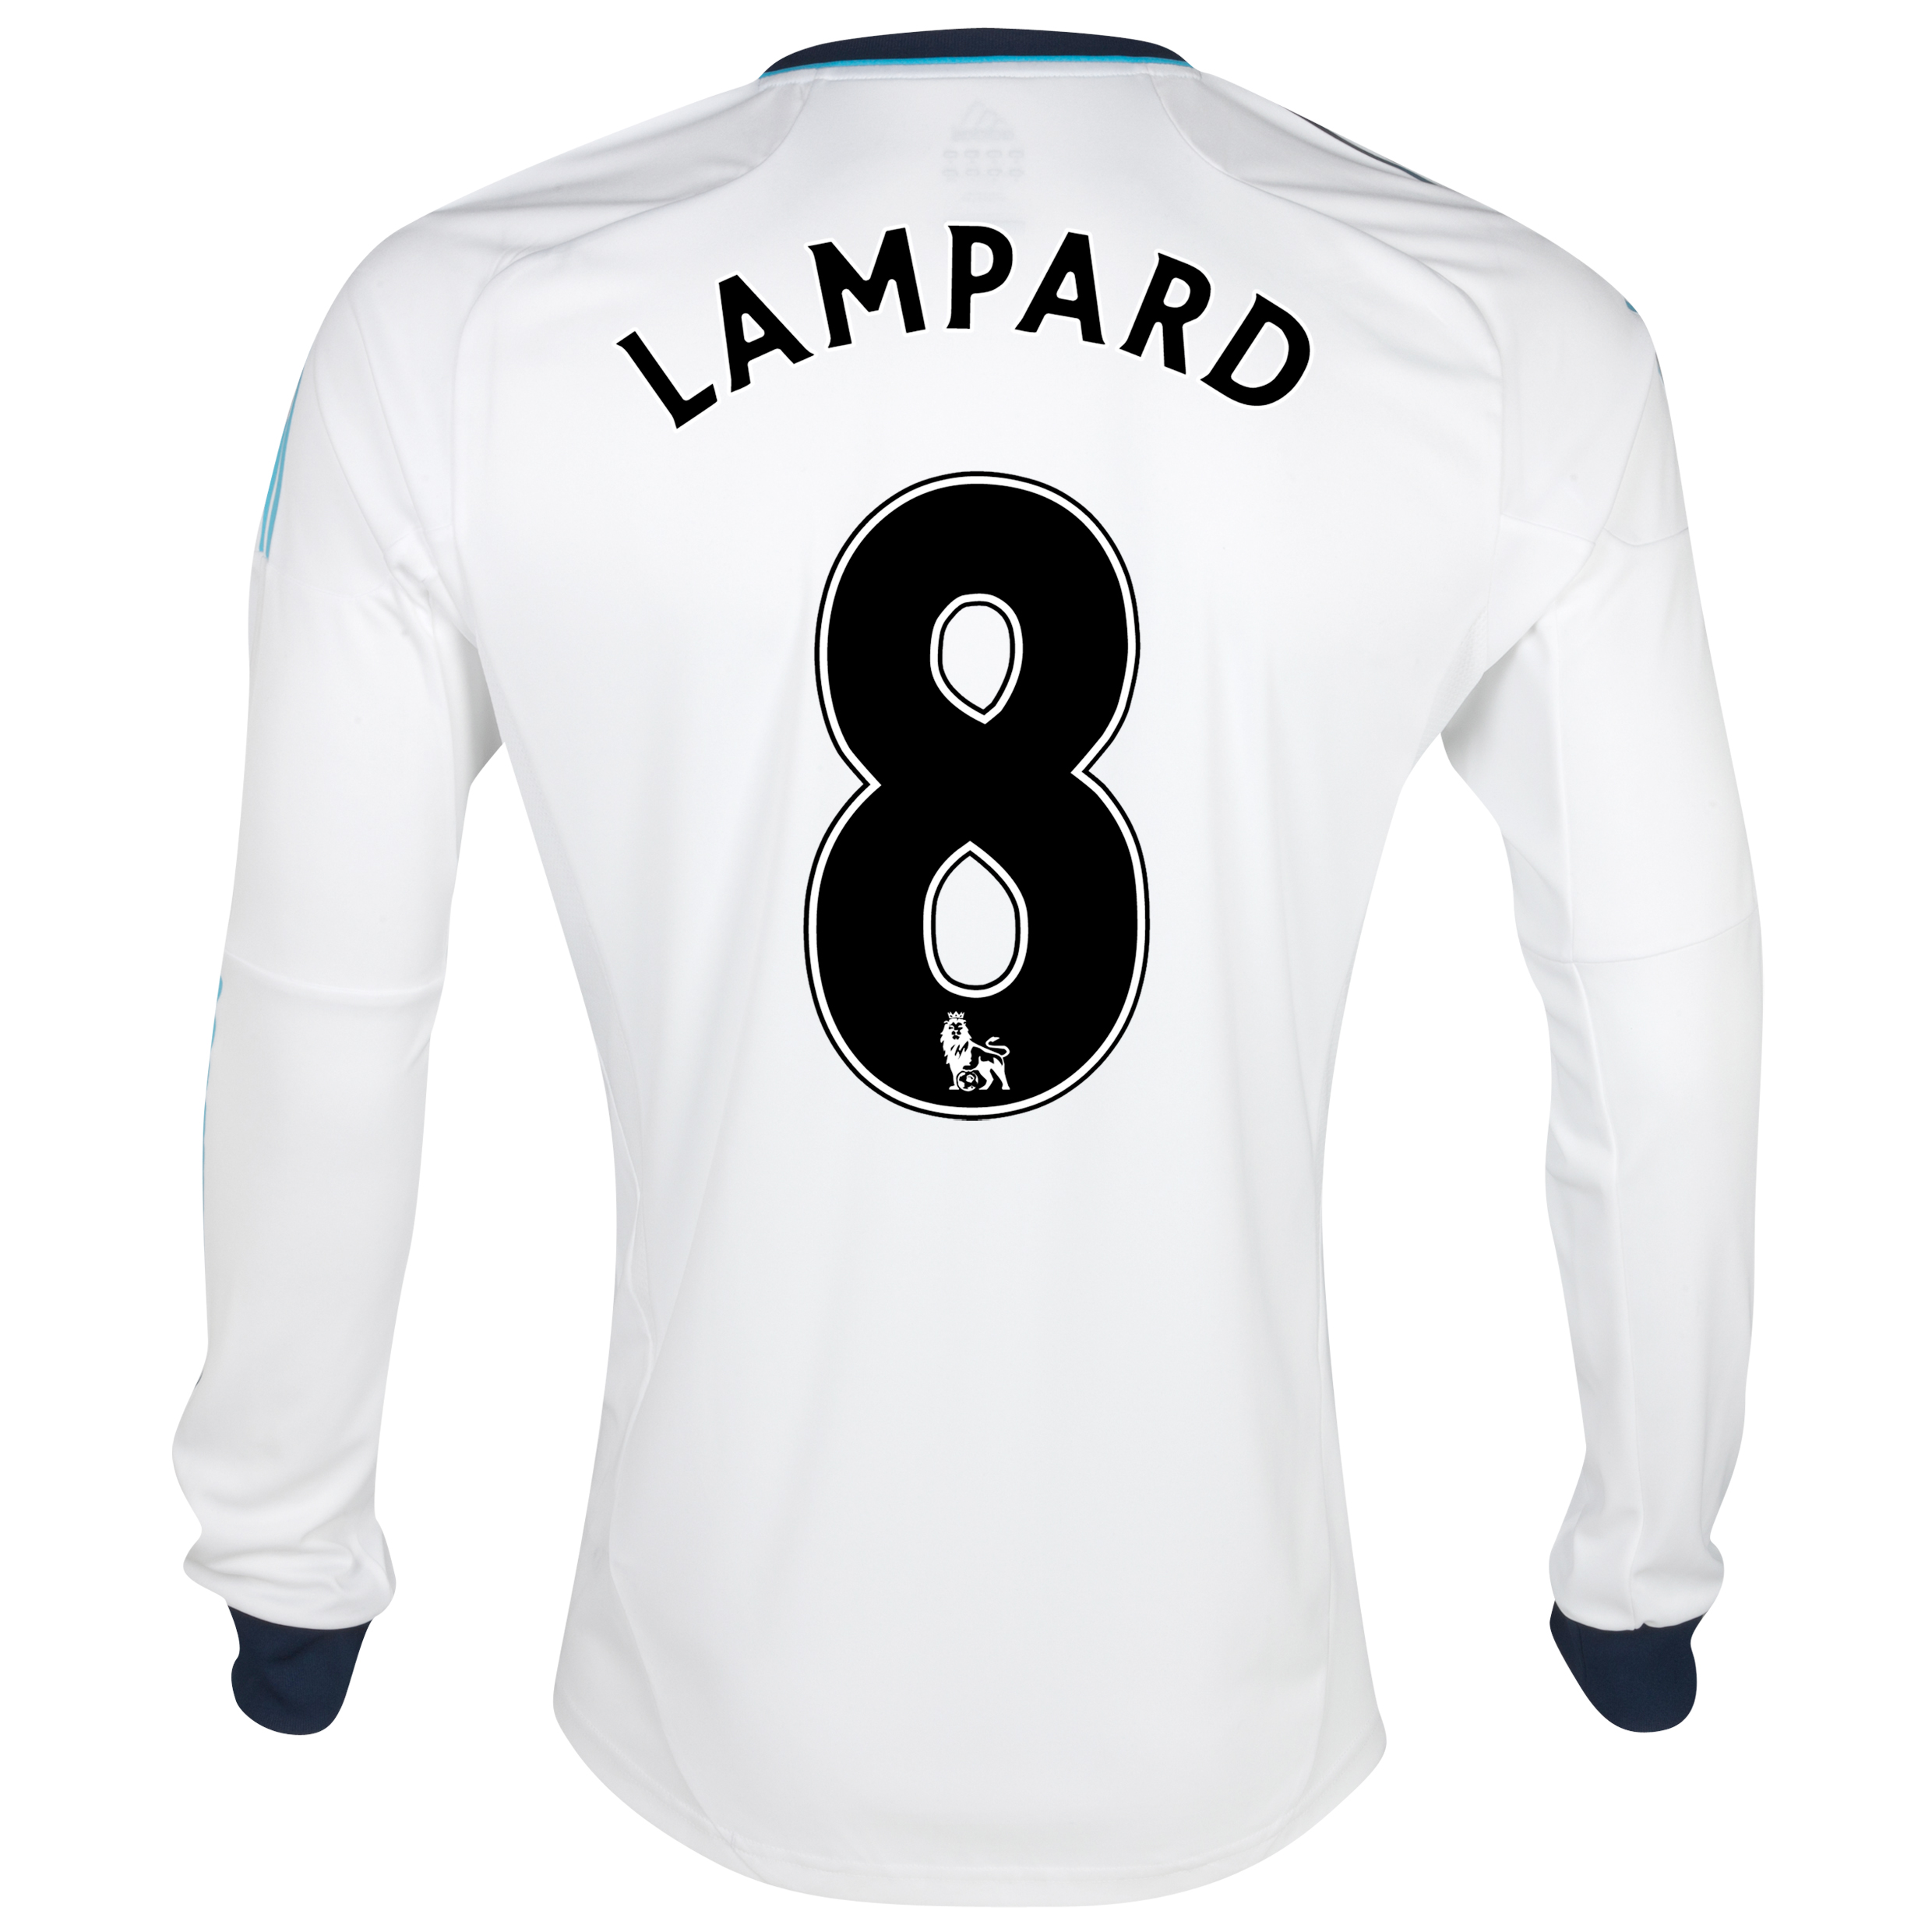 Chelsea Away Shirt 2012/13 - Long Sleeved  - Youths with Lampard 8 printing